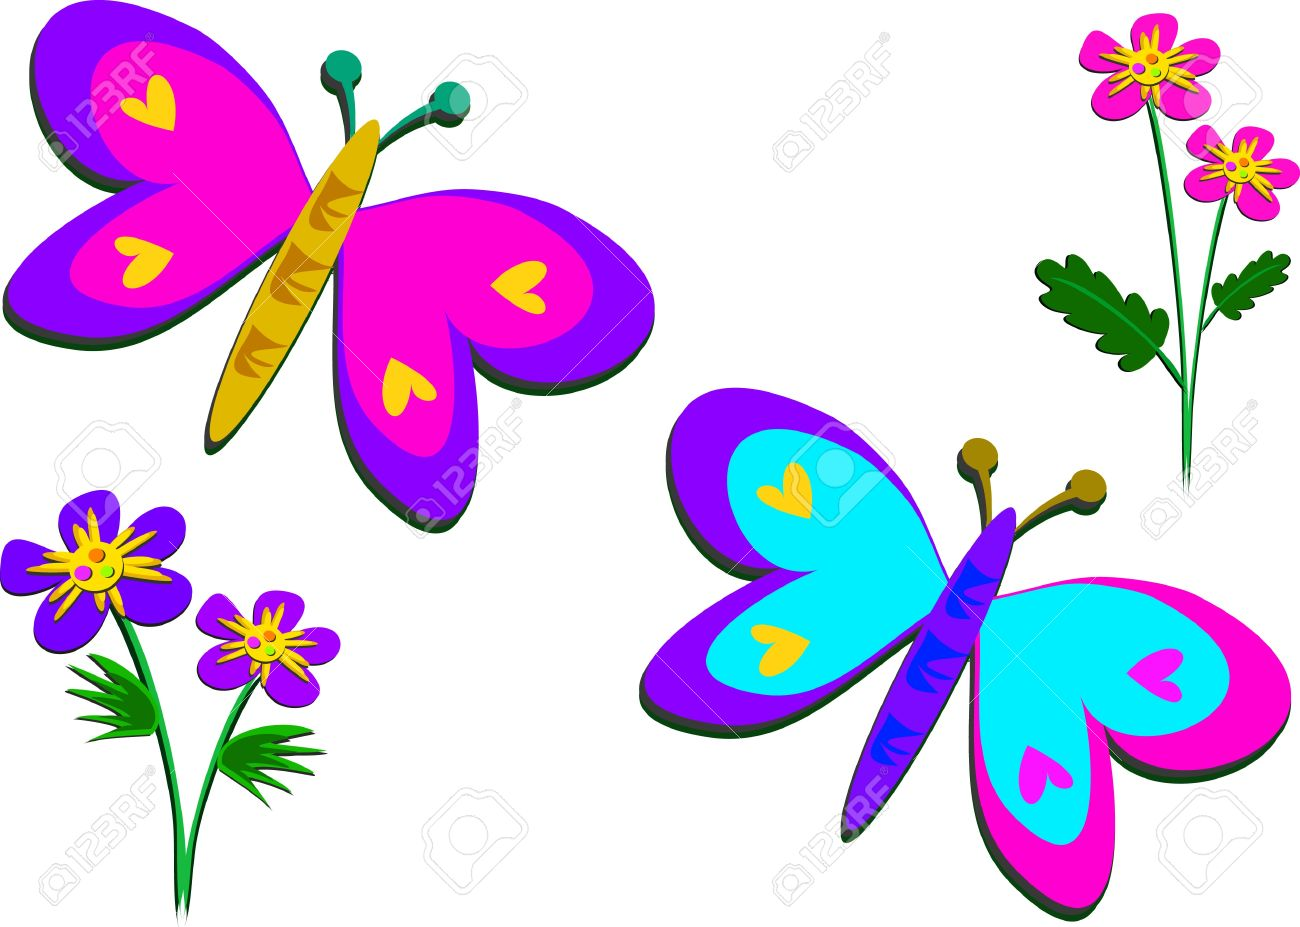 peaceful butterflies and flowers royalty free cliparts vectors